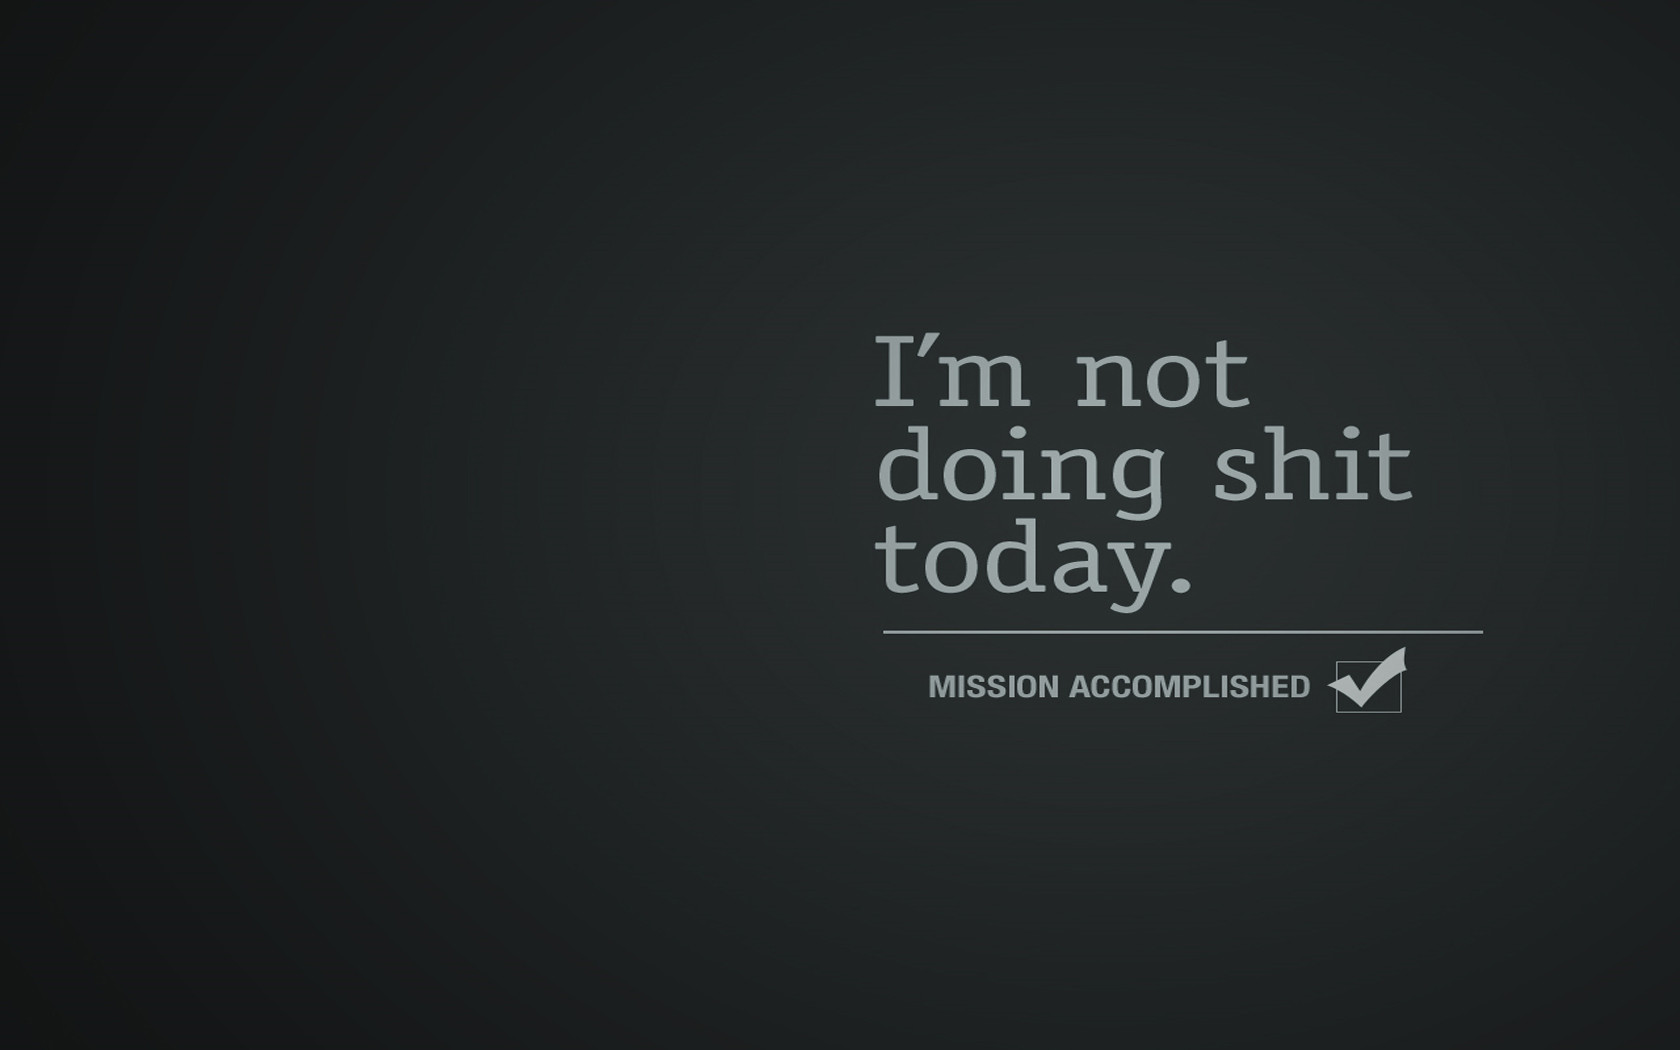 I'm not doing shit today